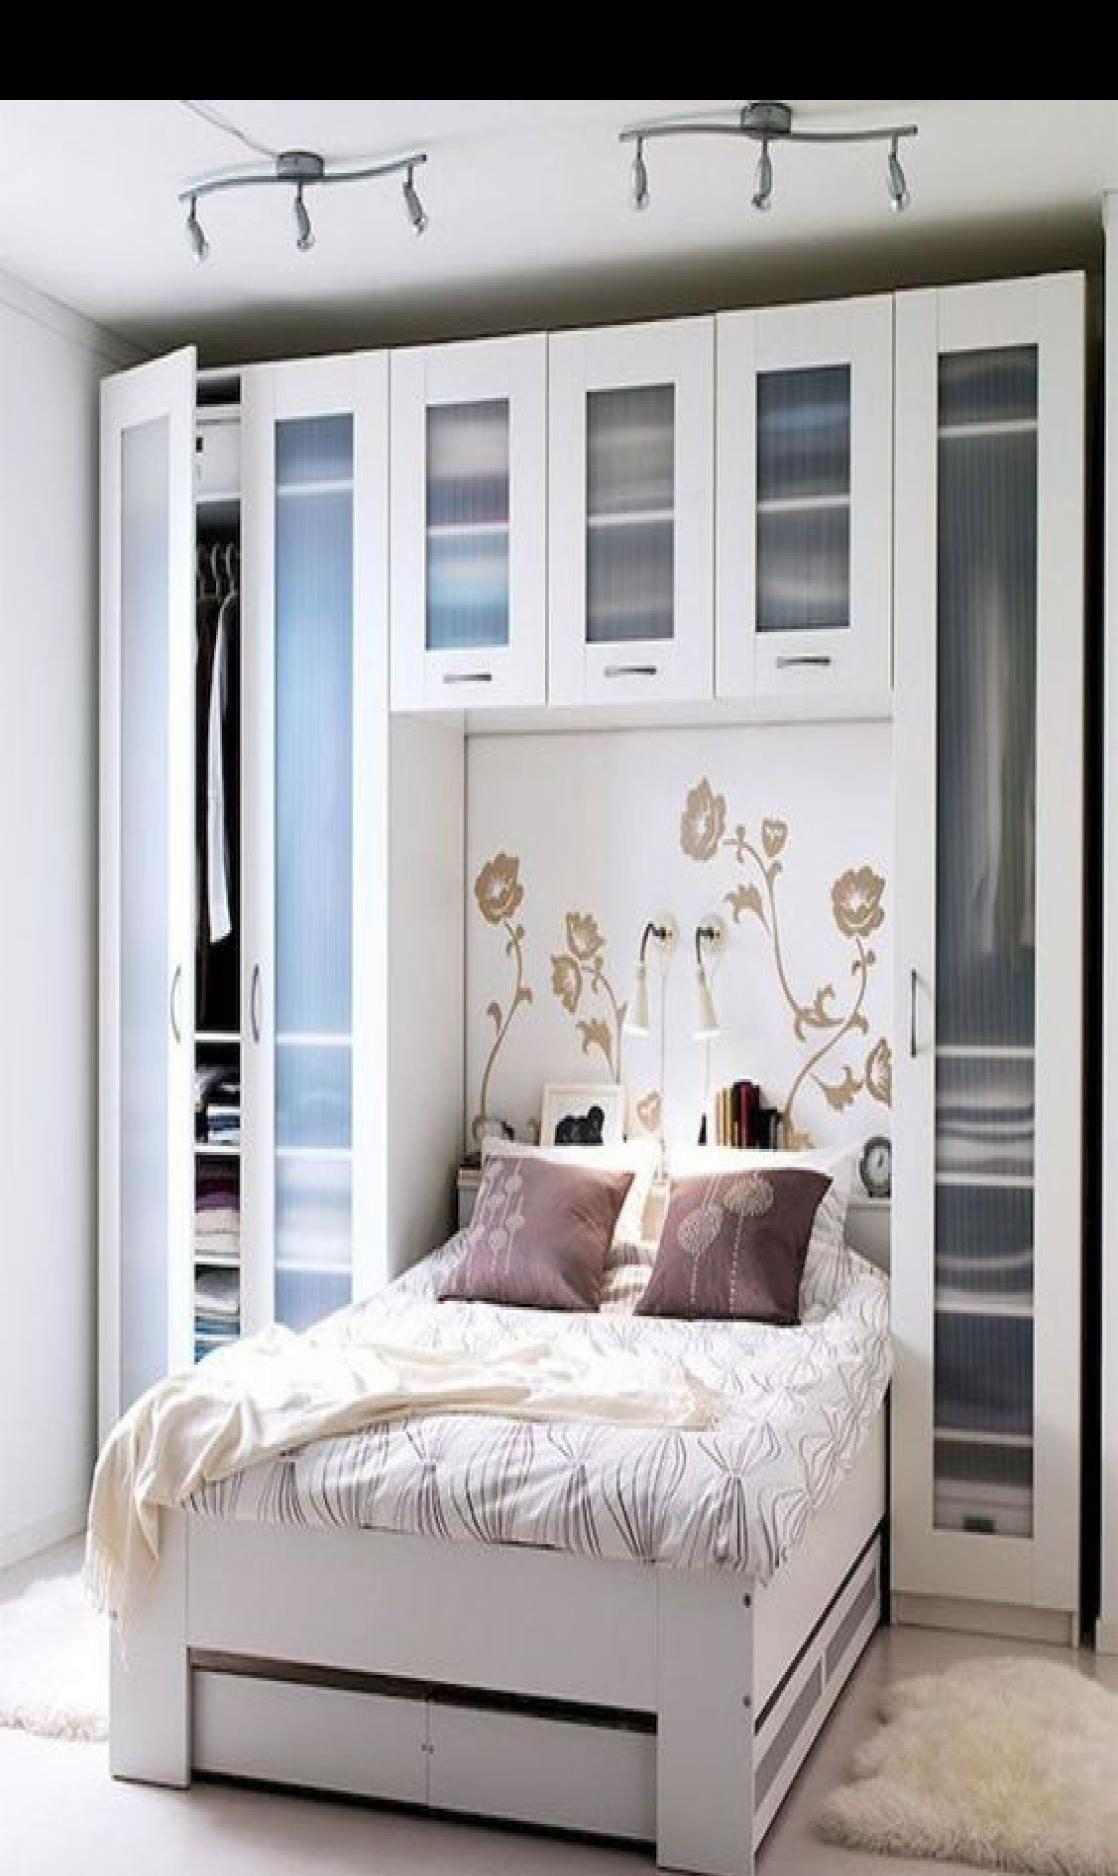 Pin On Bed Room Smal Image Ideas